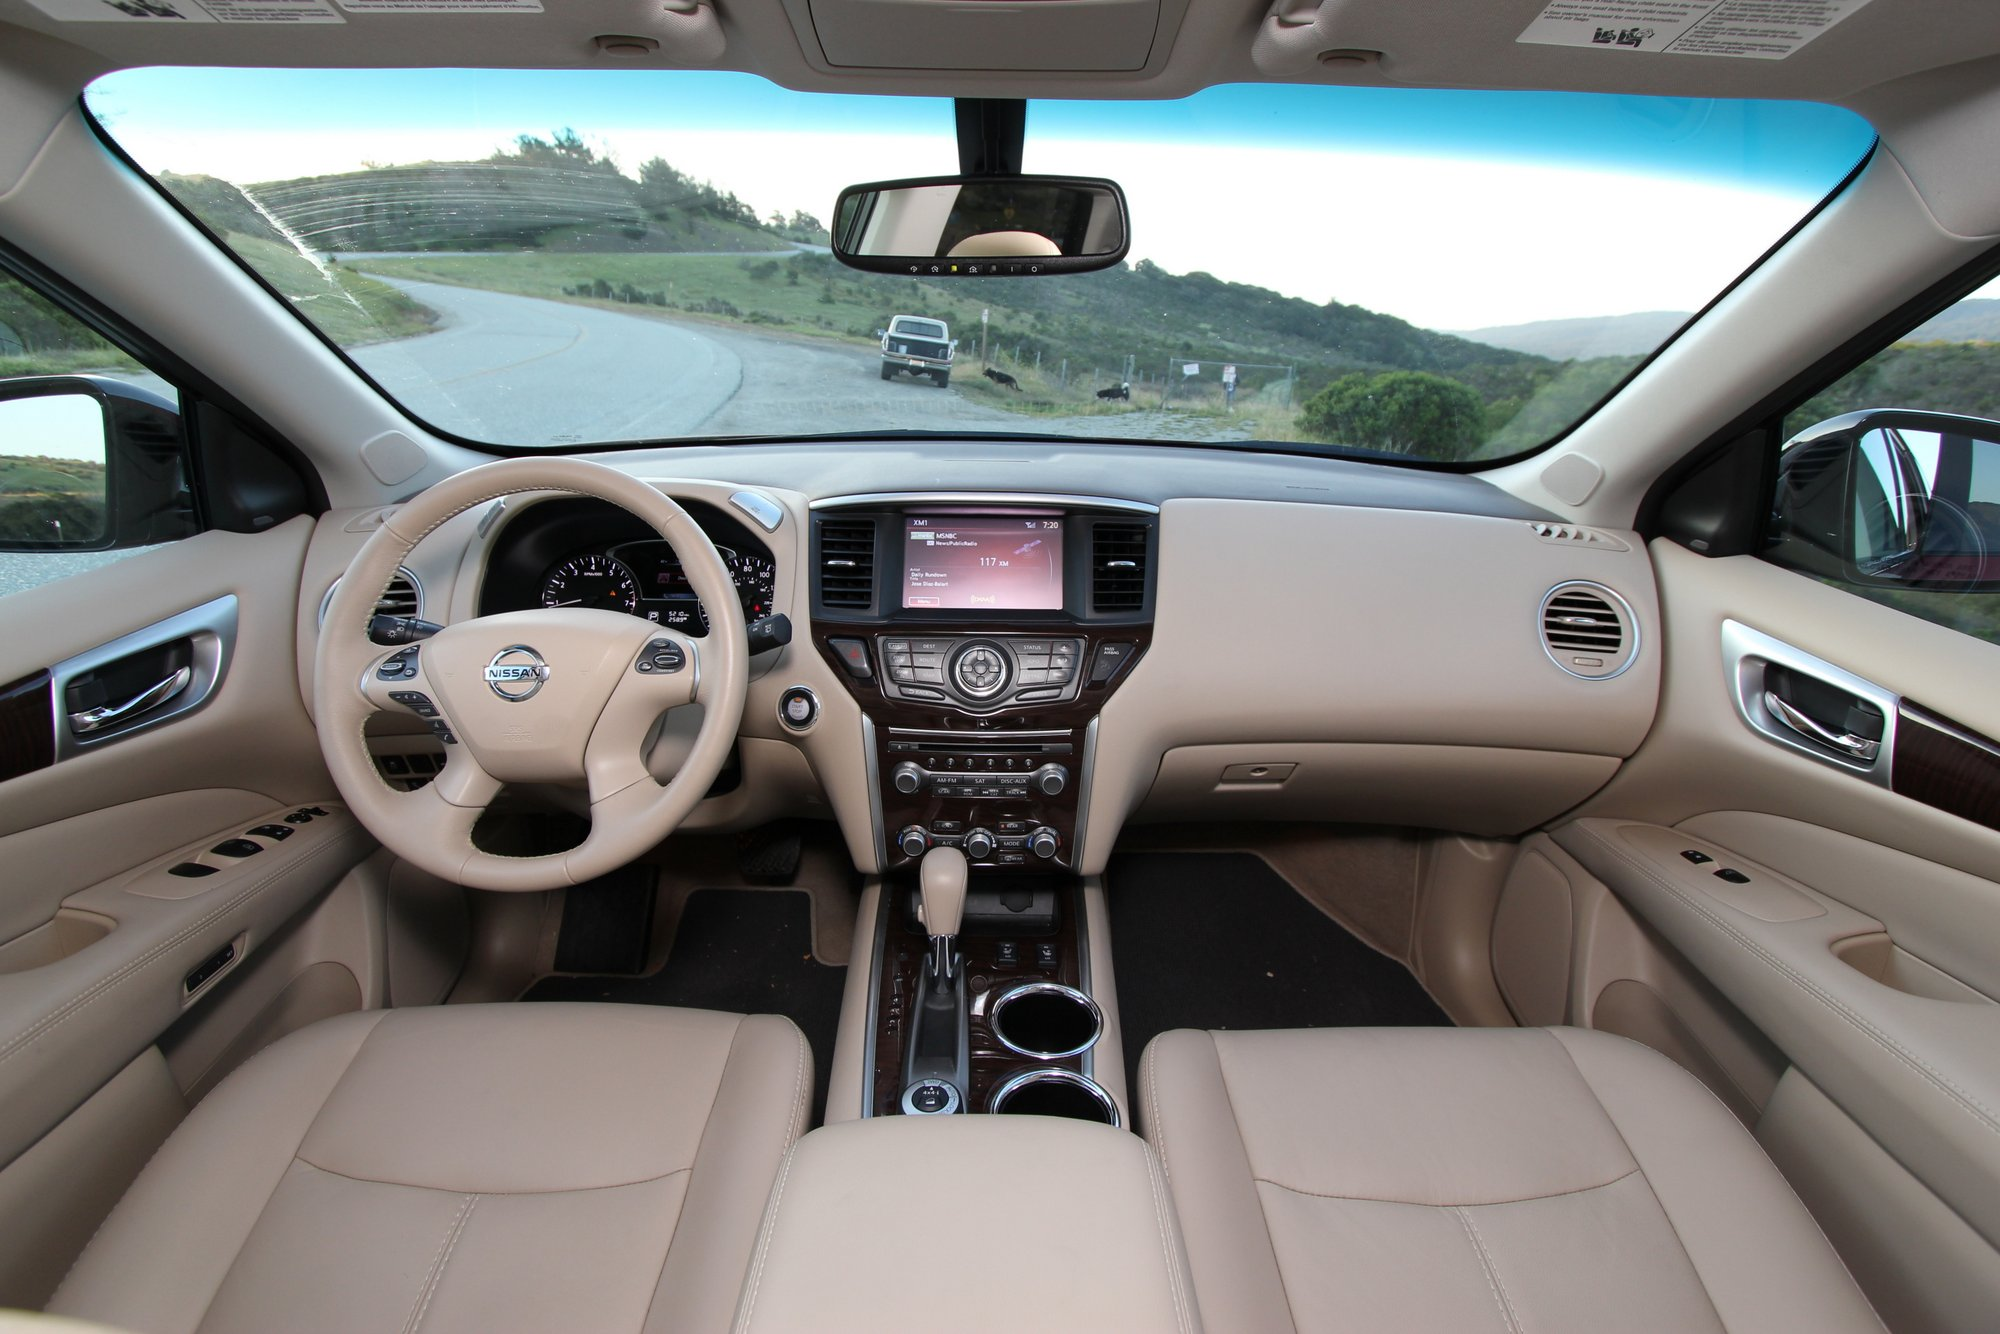 2015 nissan pathfinder 4x4 review with video the truth - 2013 nissan pathfinder interior colors ...